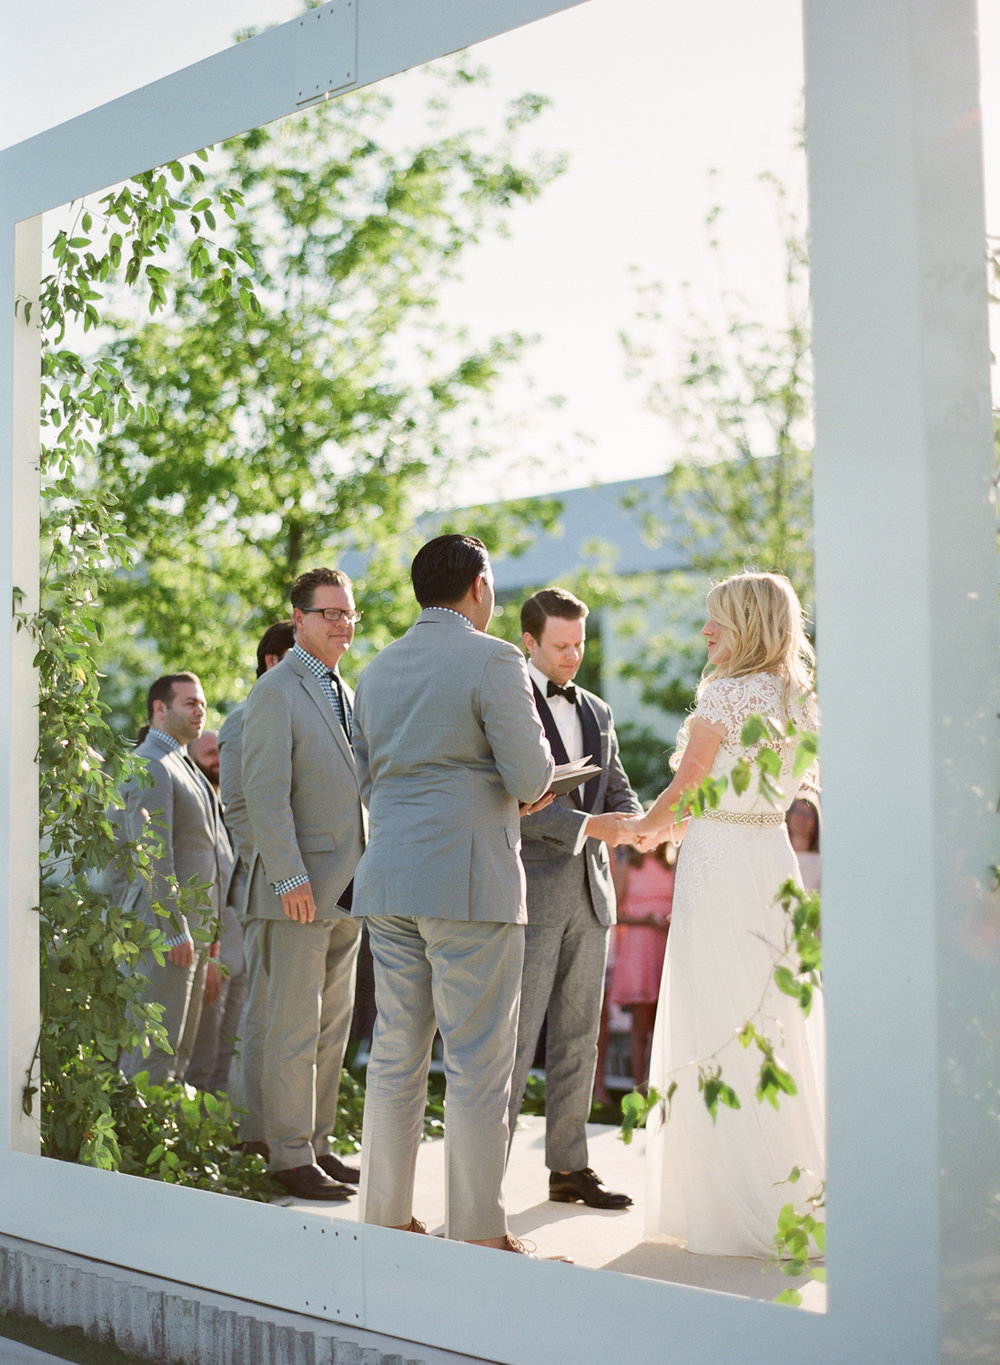 PROSPECT_HOUSE_WEDDING_AUSTIN_TX_BY_MATTHEW_MOORE_PHOTOGRAPHY_00404.jpg